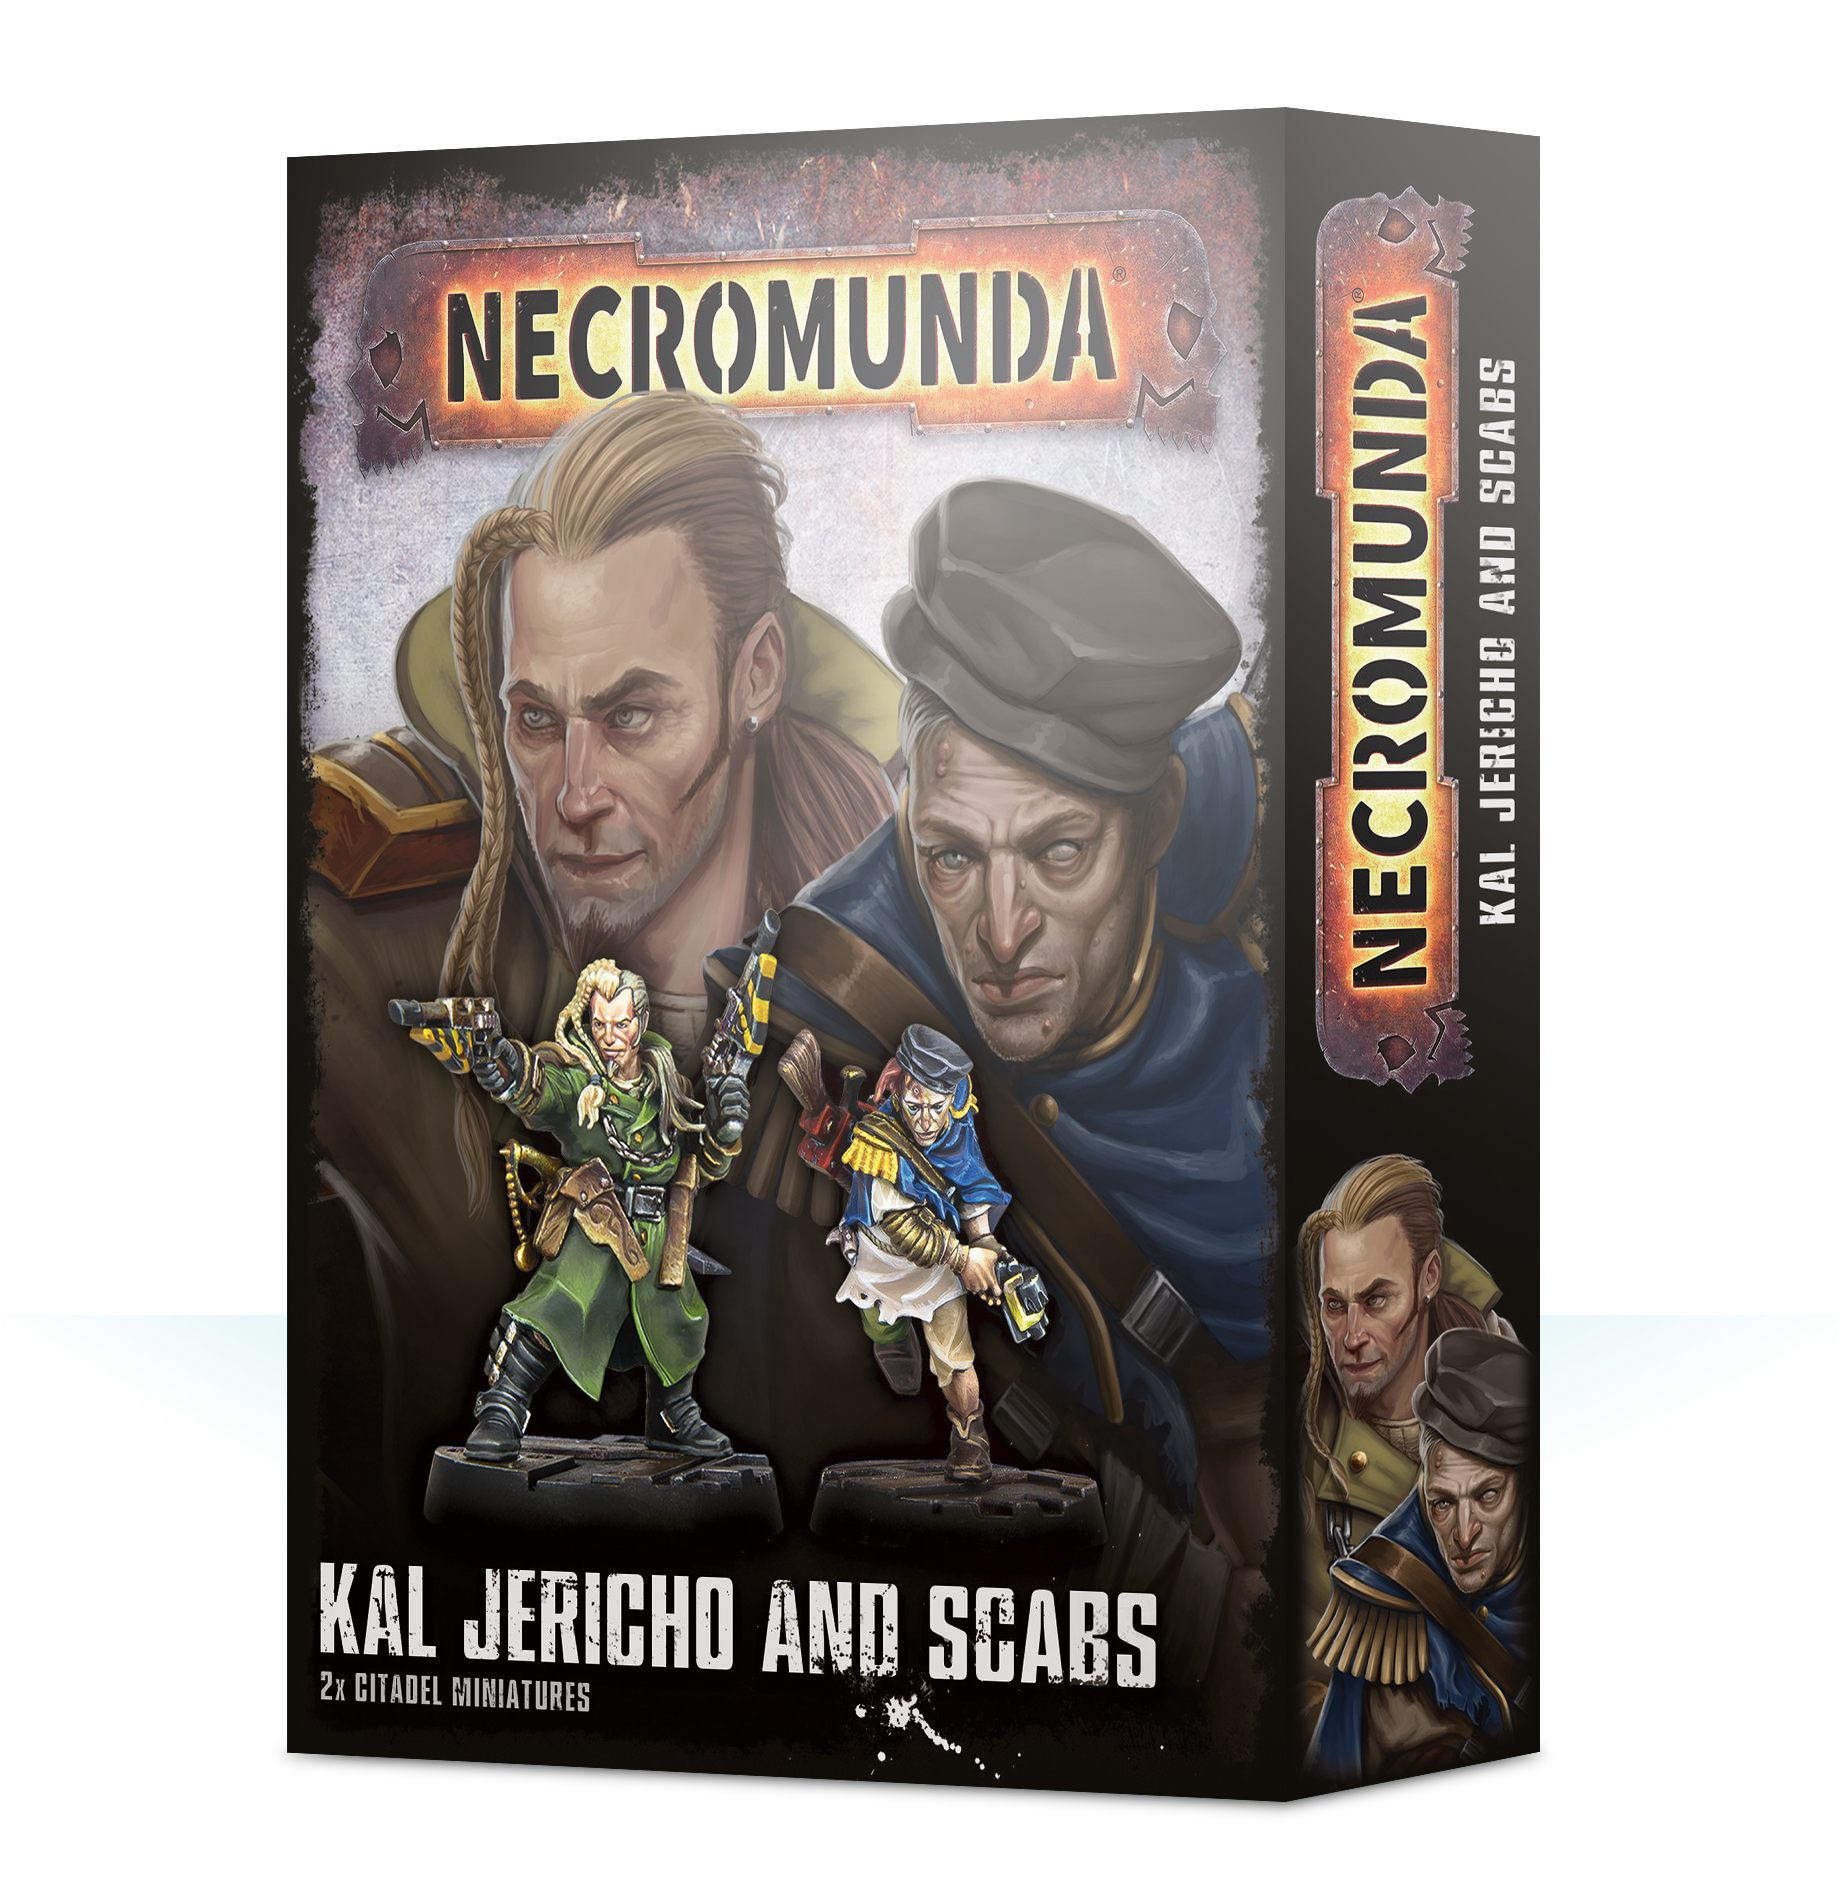 300-38 Necromunda: Kal Jericho and Scabs | Misty Mountain Games